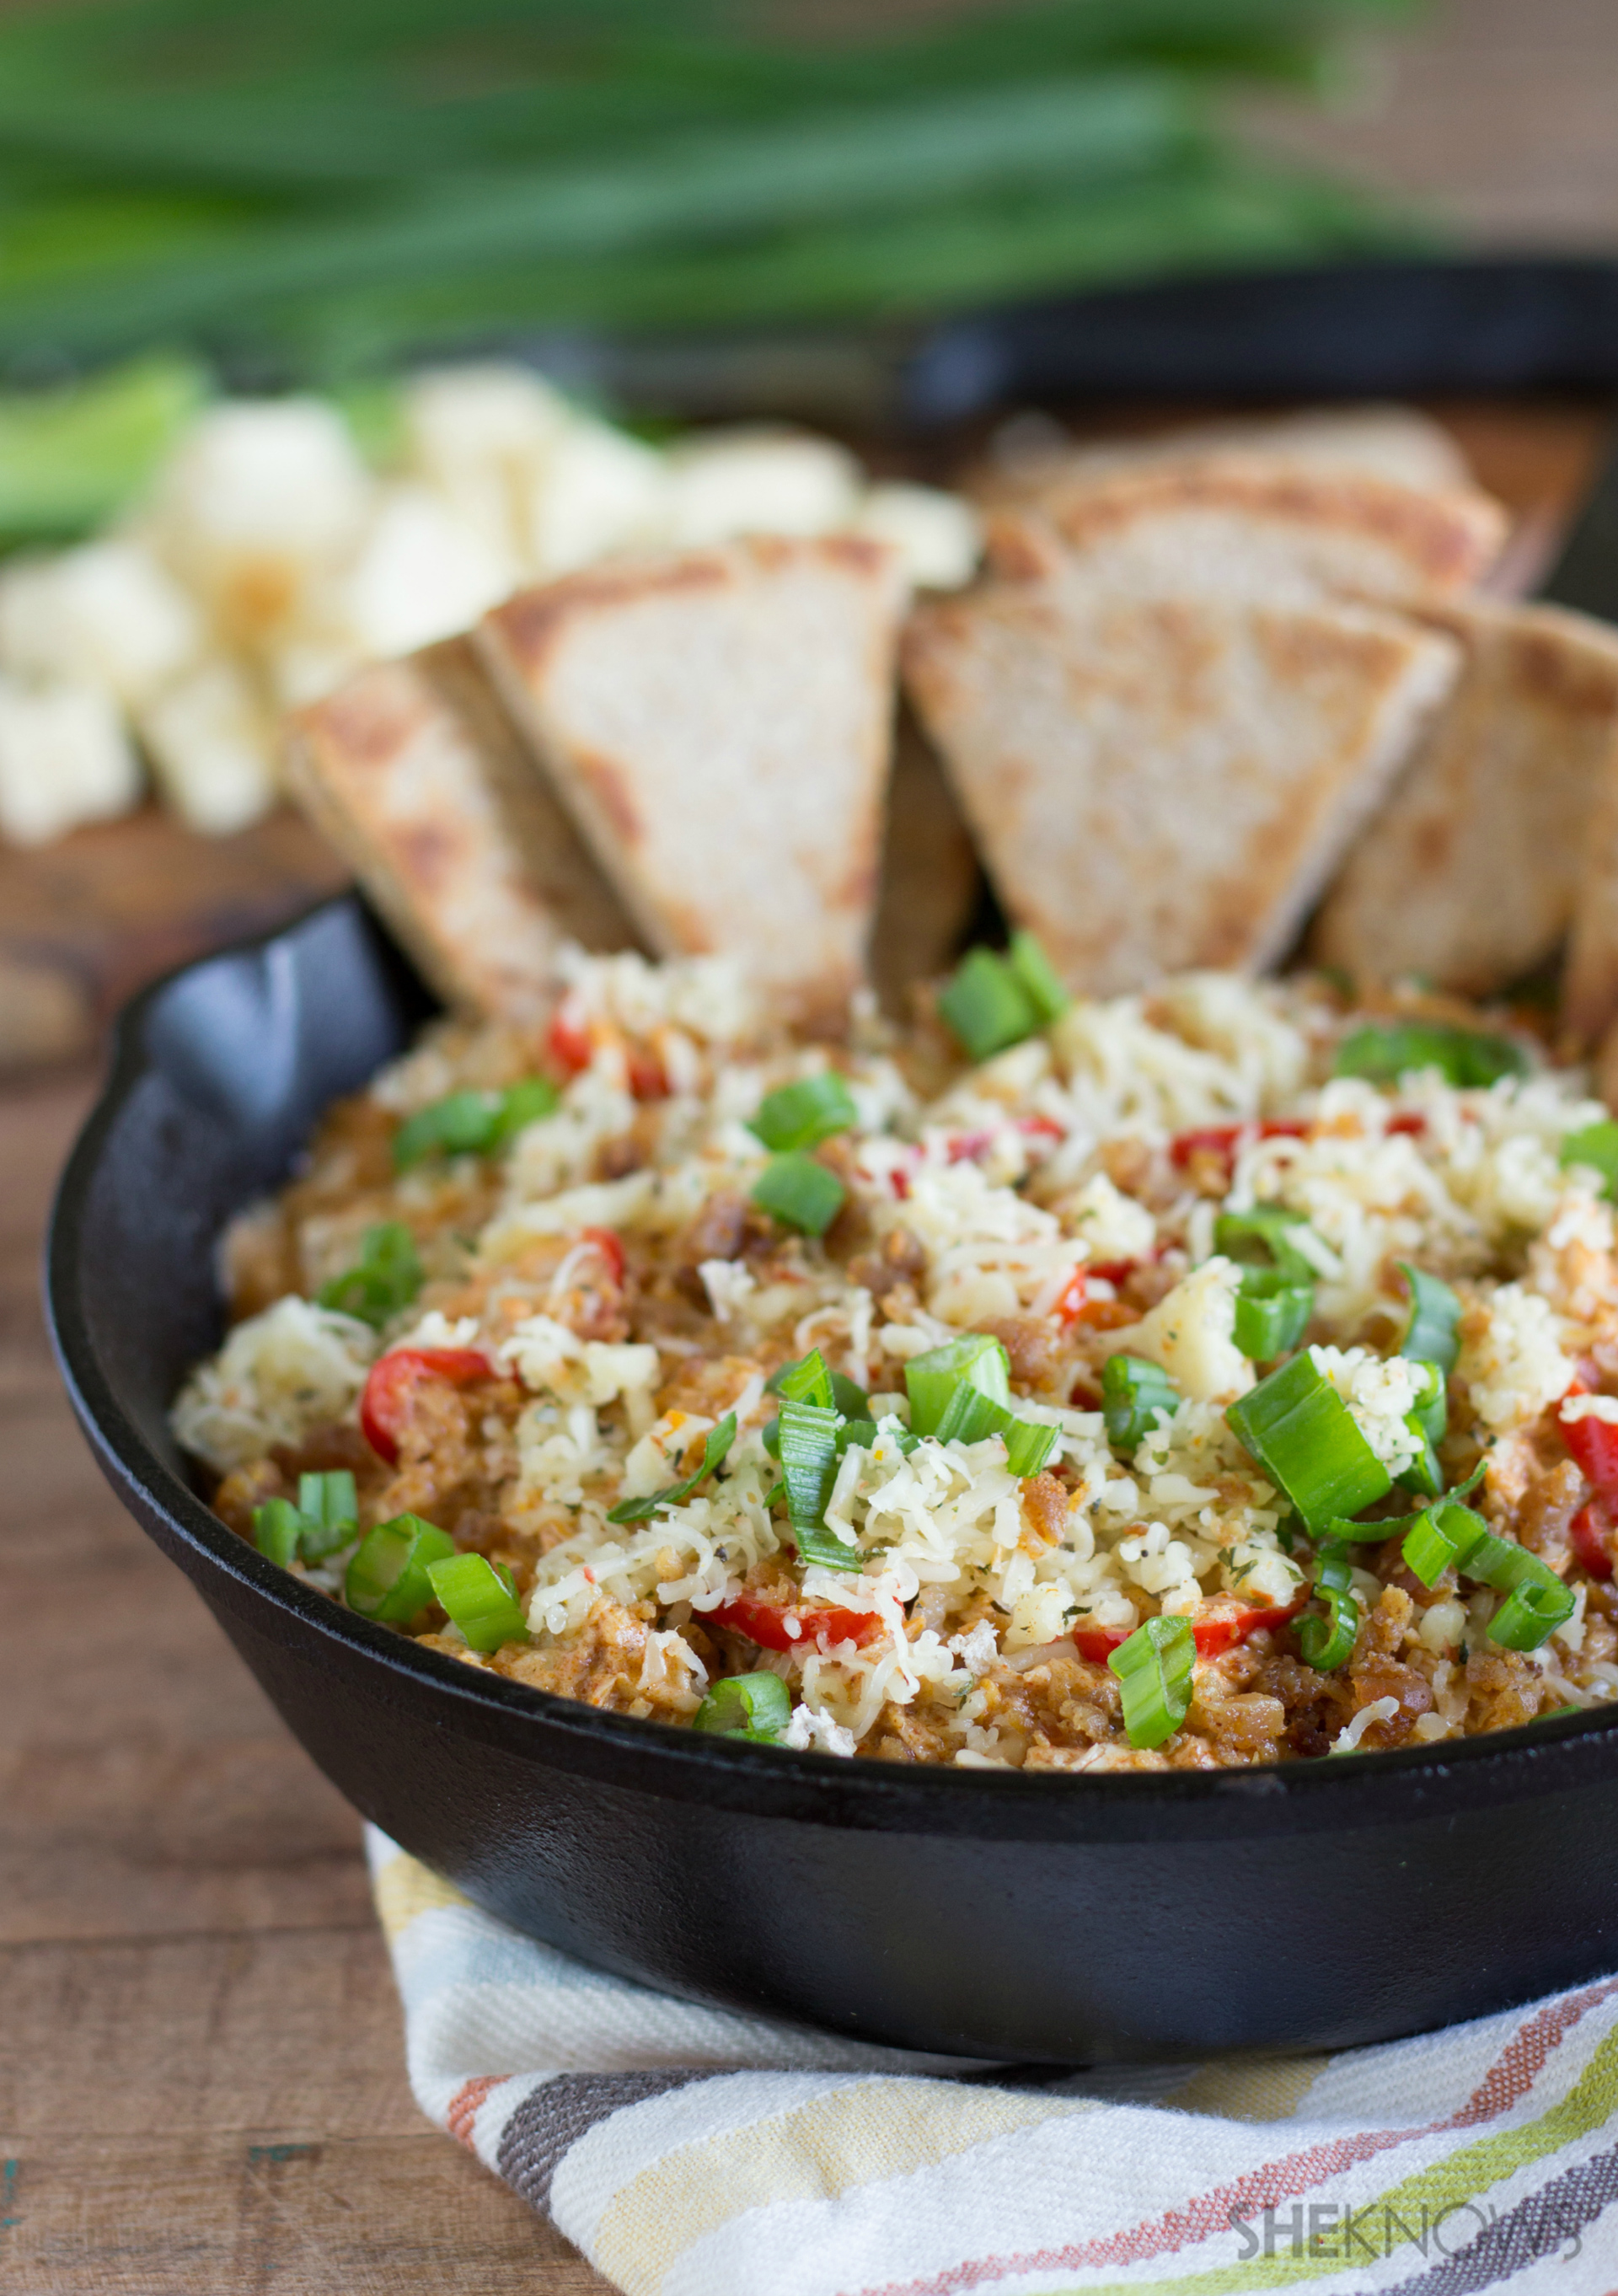 http://www.sheknows.com/food-and-recipes/articles/1036697/skillet-chicken-and-bacon-dip